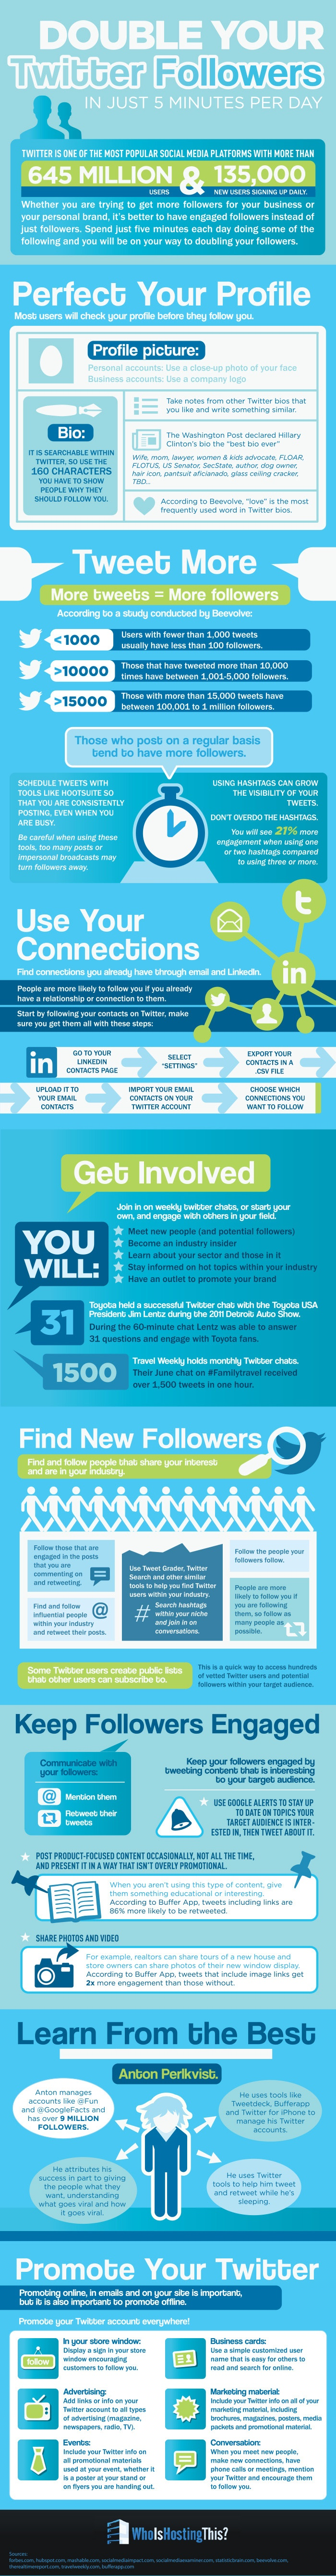 Twitter followers outlines